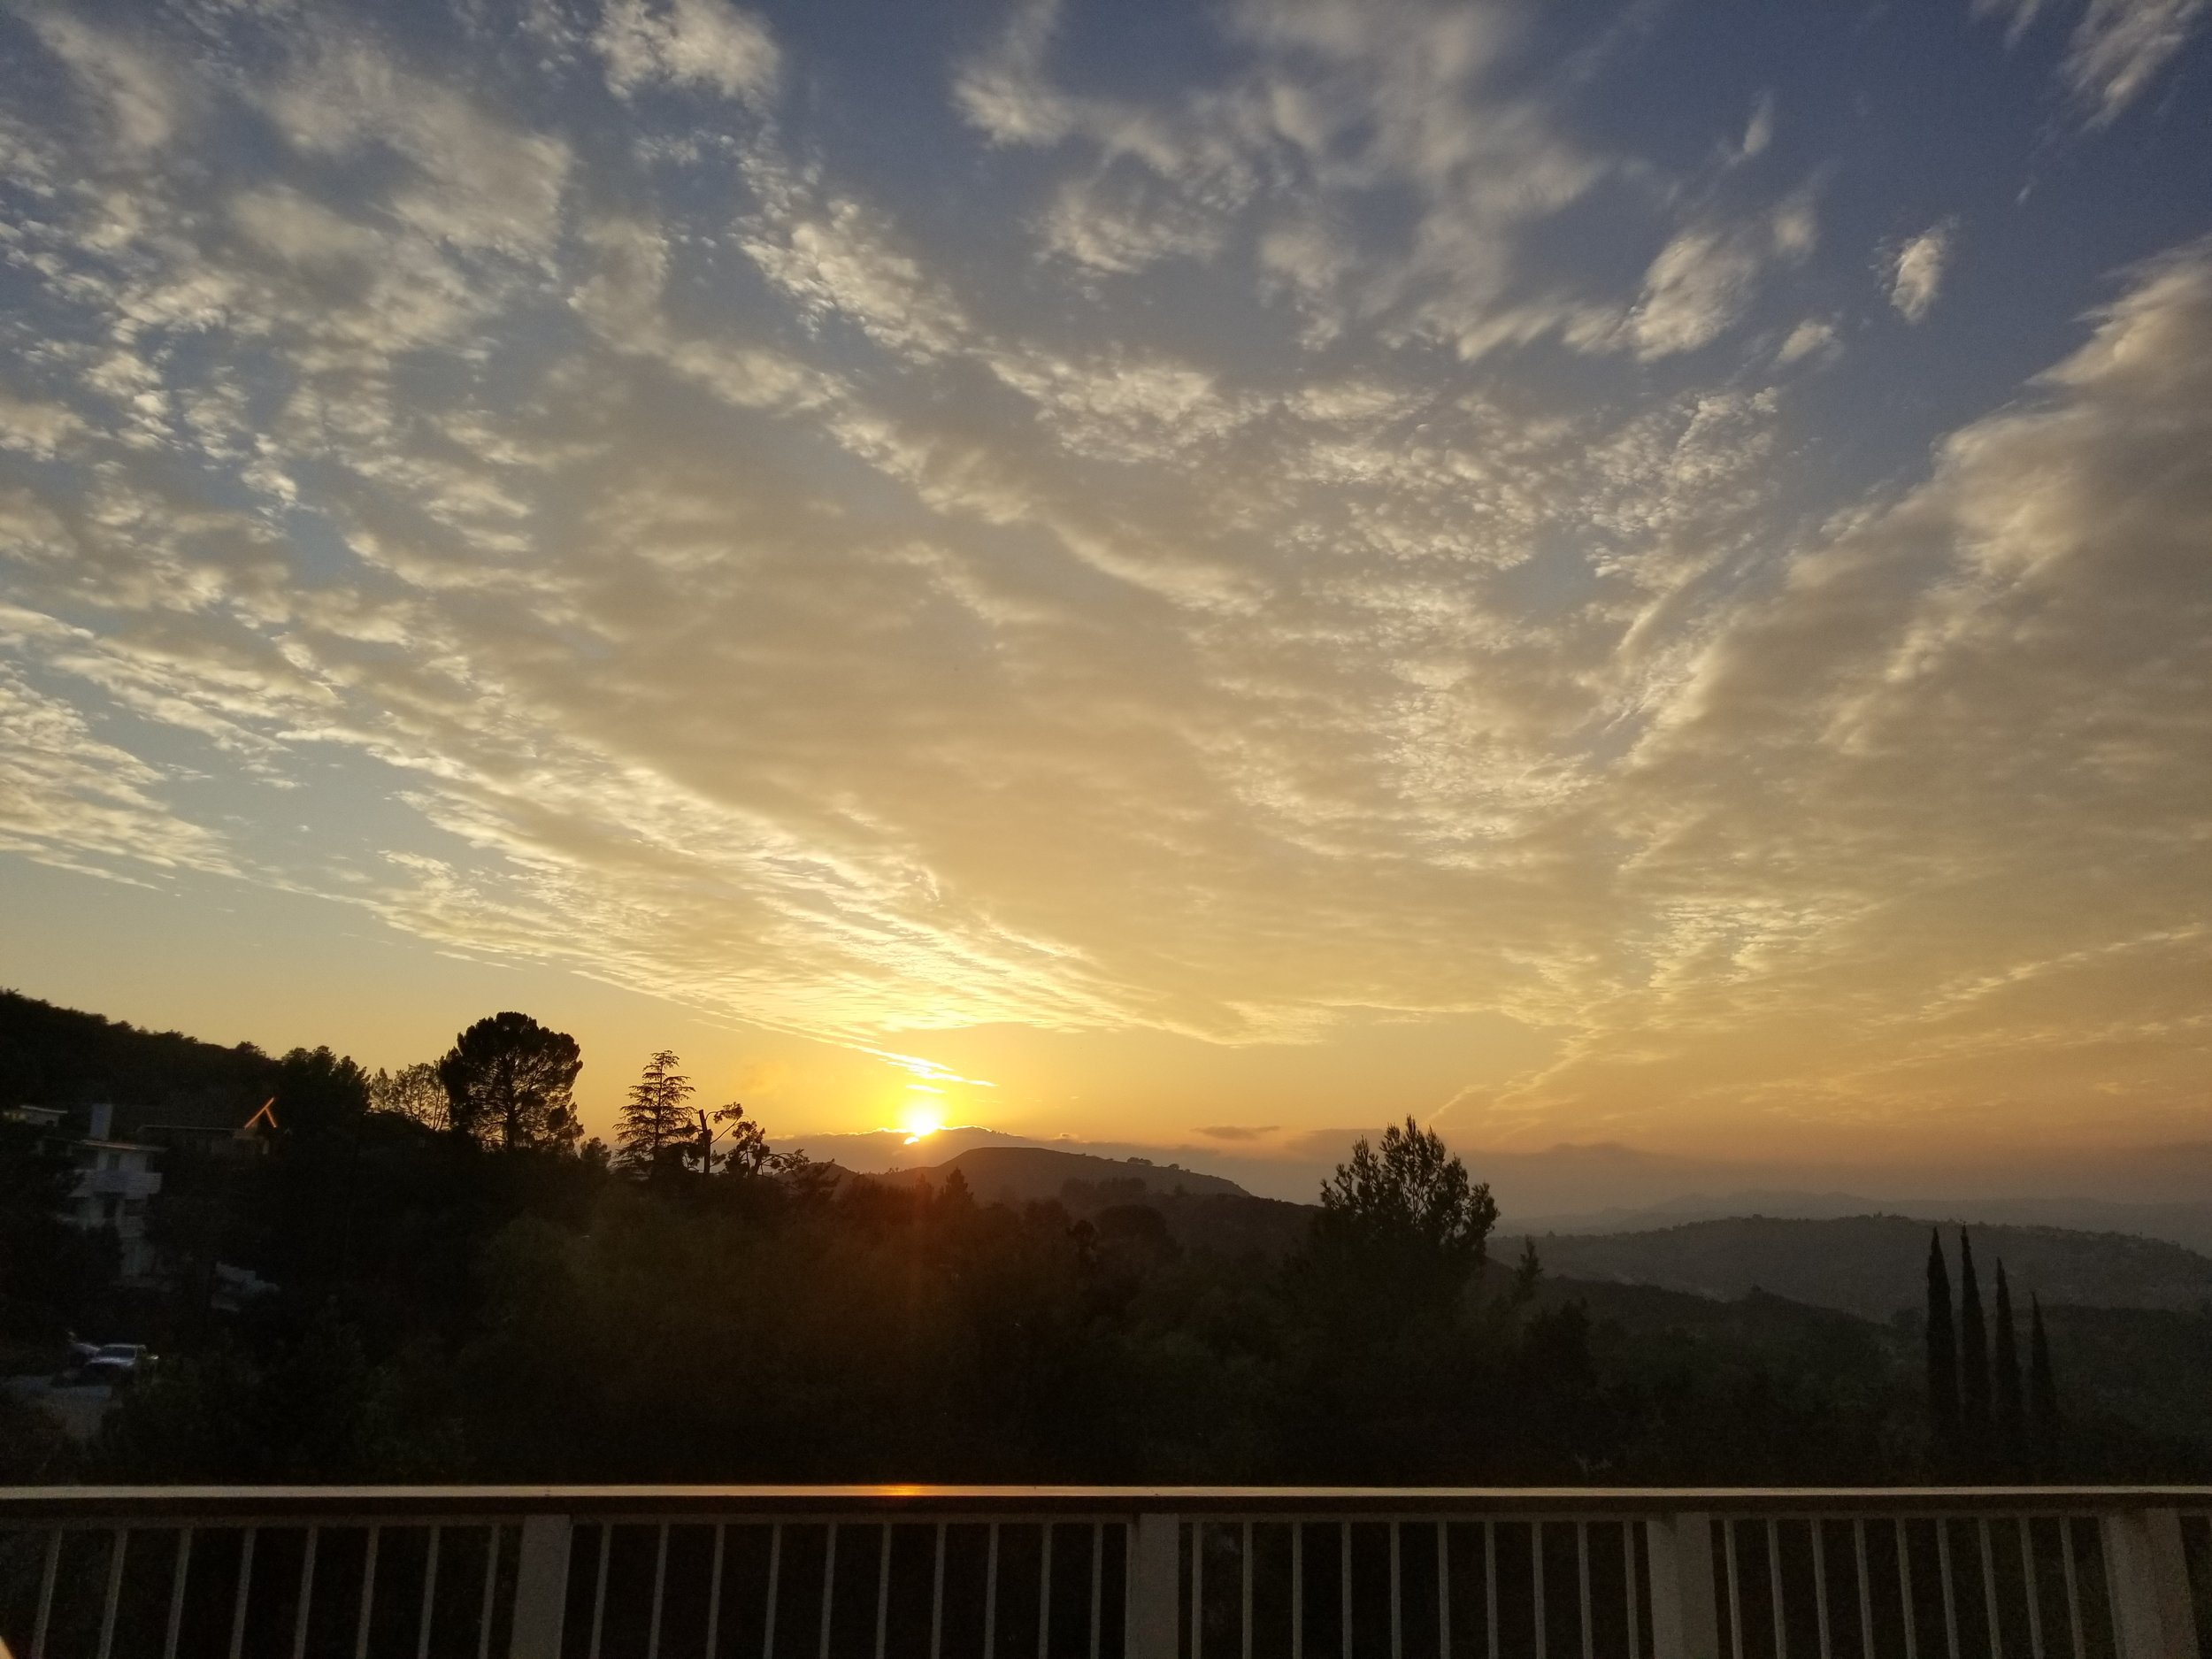 One of the many breathtaking sunsets from Halelly's back deck in Cali...